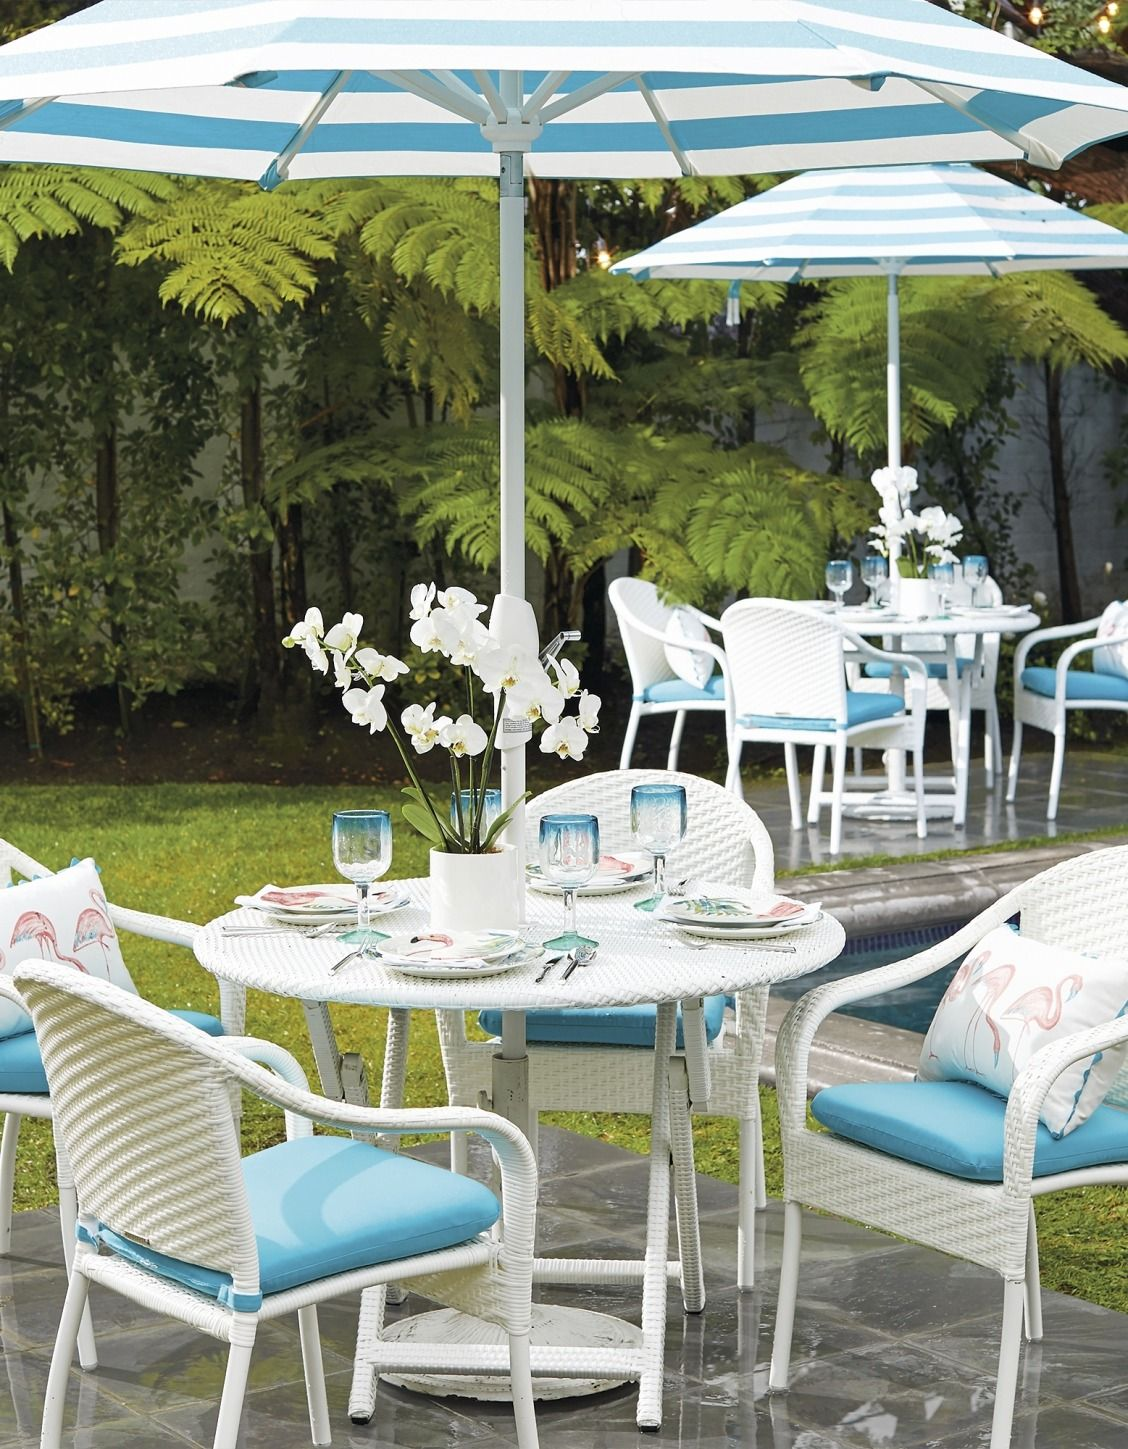 Cafe Dining Collection Balcony Table Chairs Outdoor Patio Bar